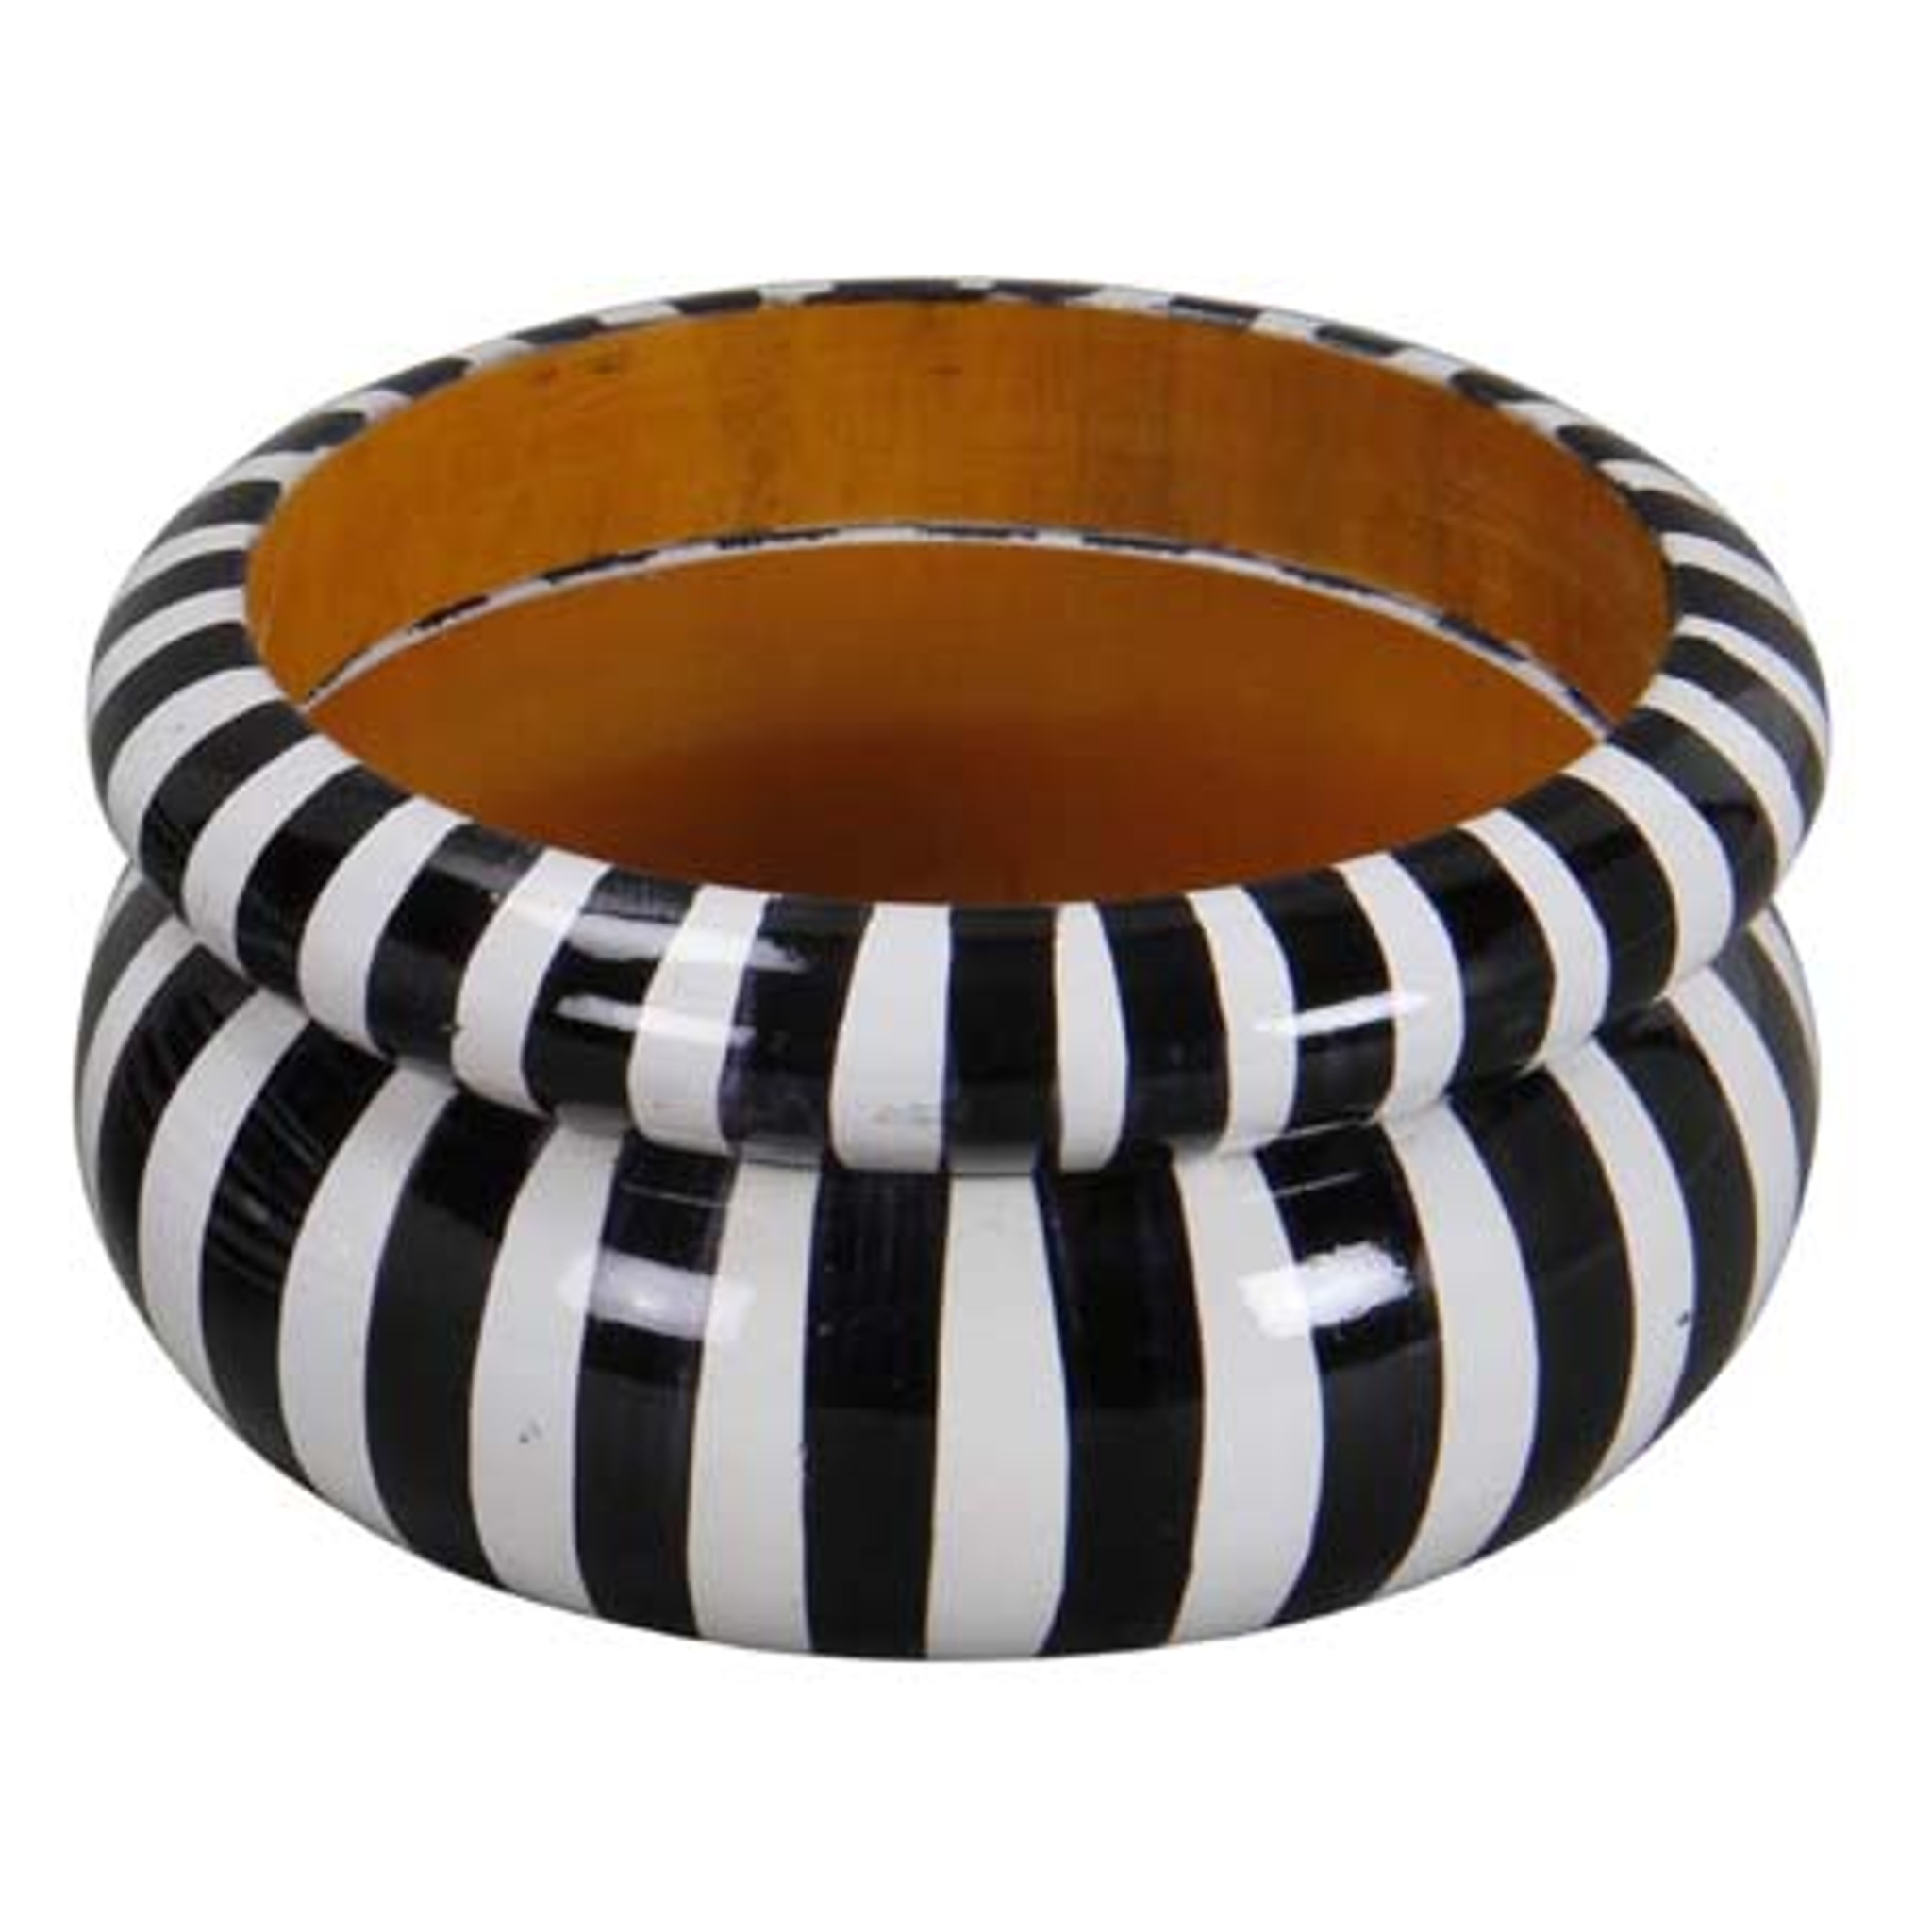 Sauda Wood Bangles Painted with Black & White Vertical Stripes